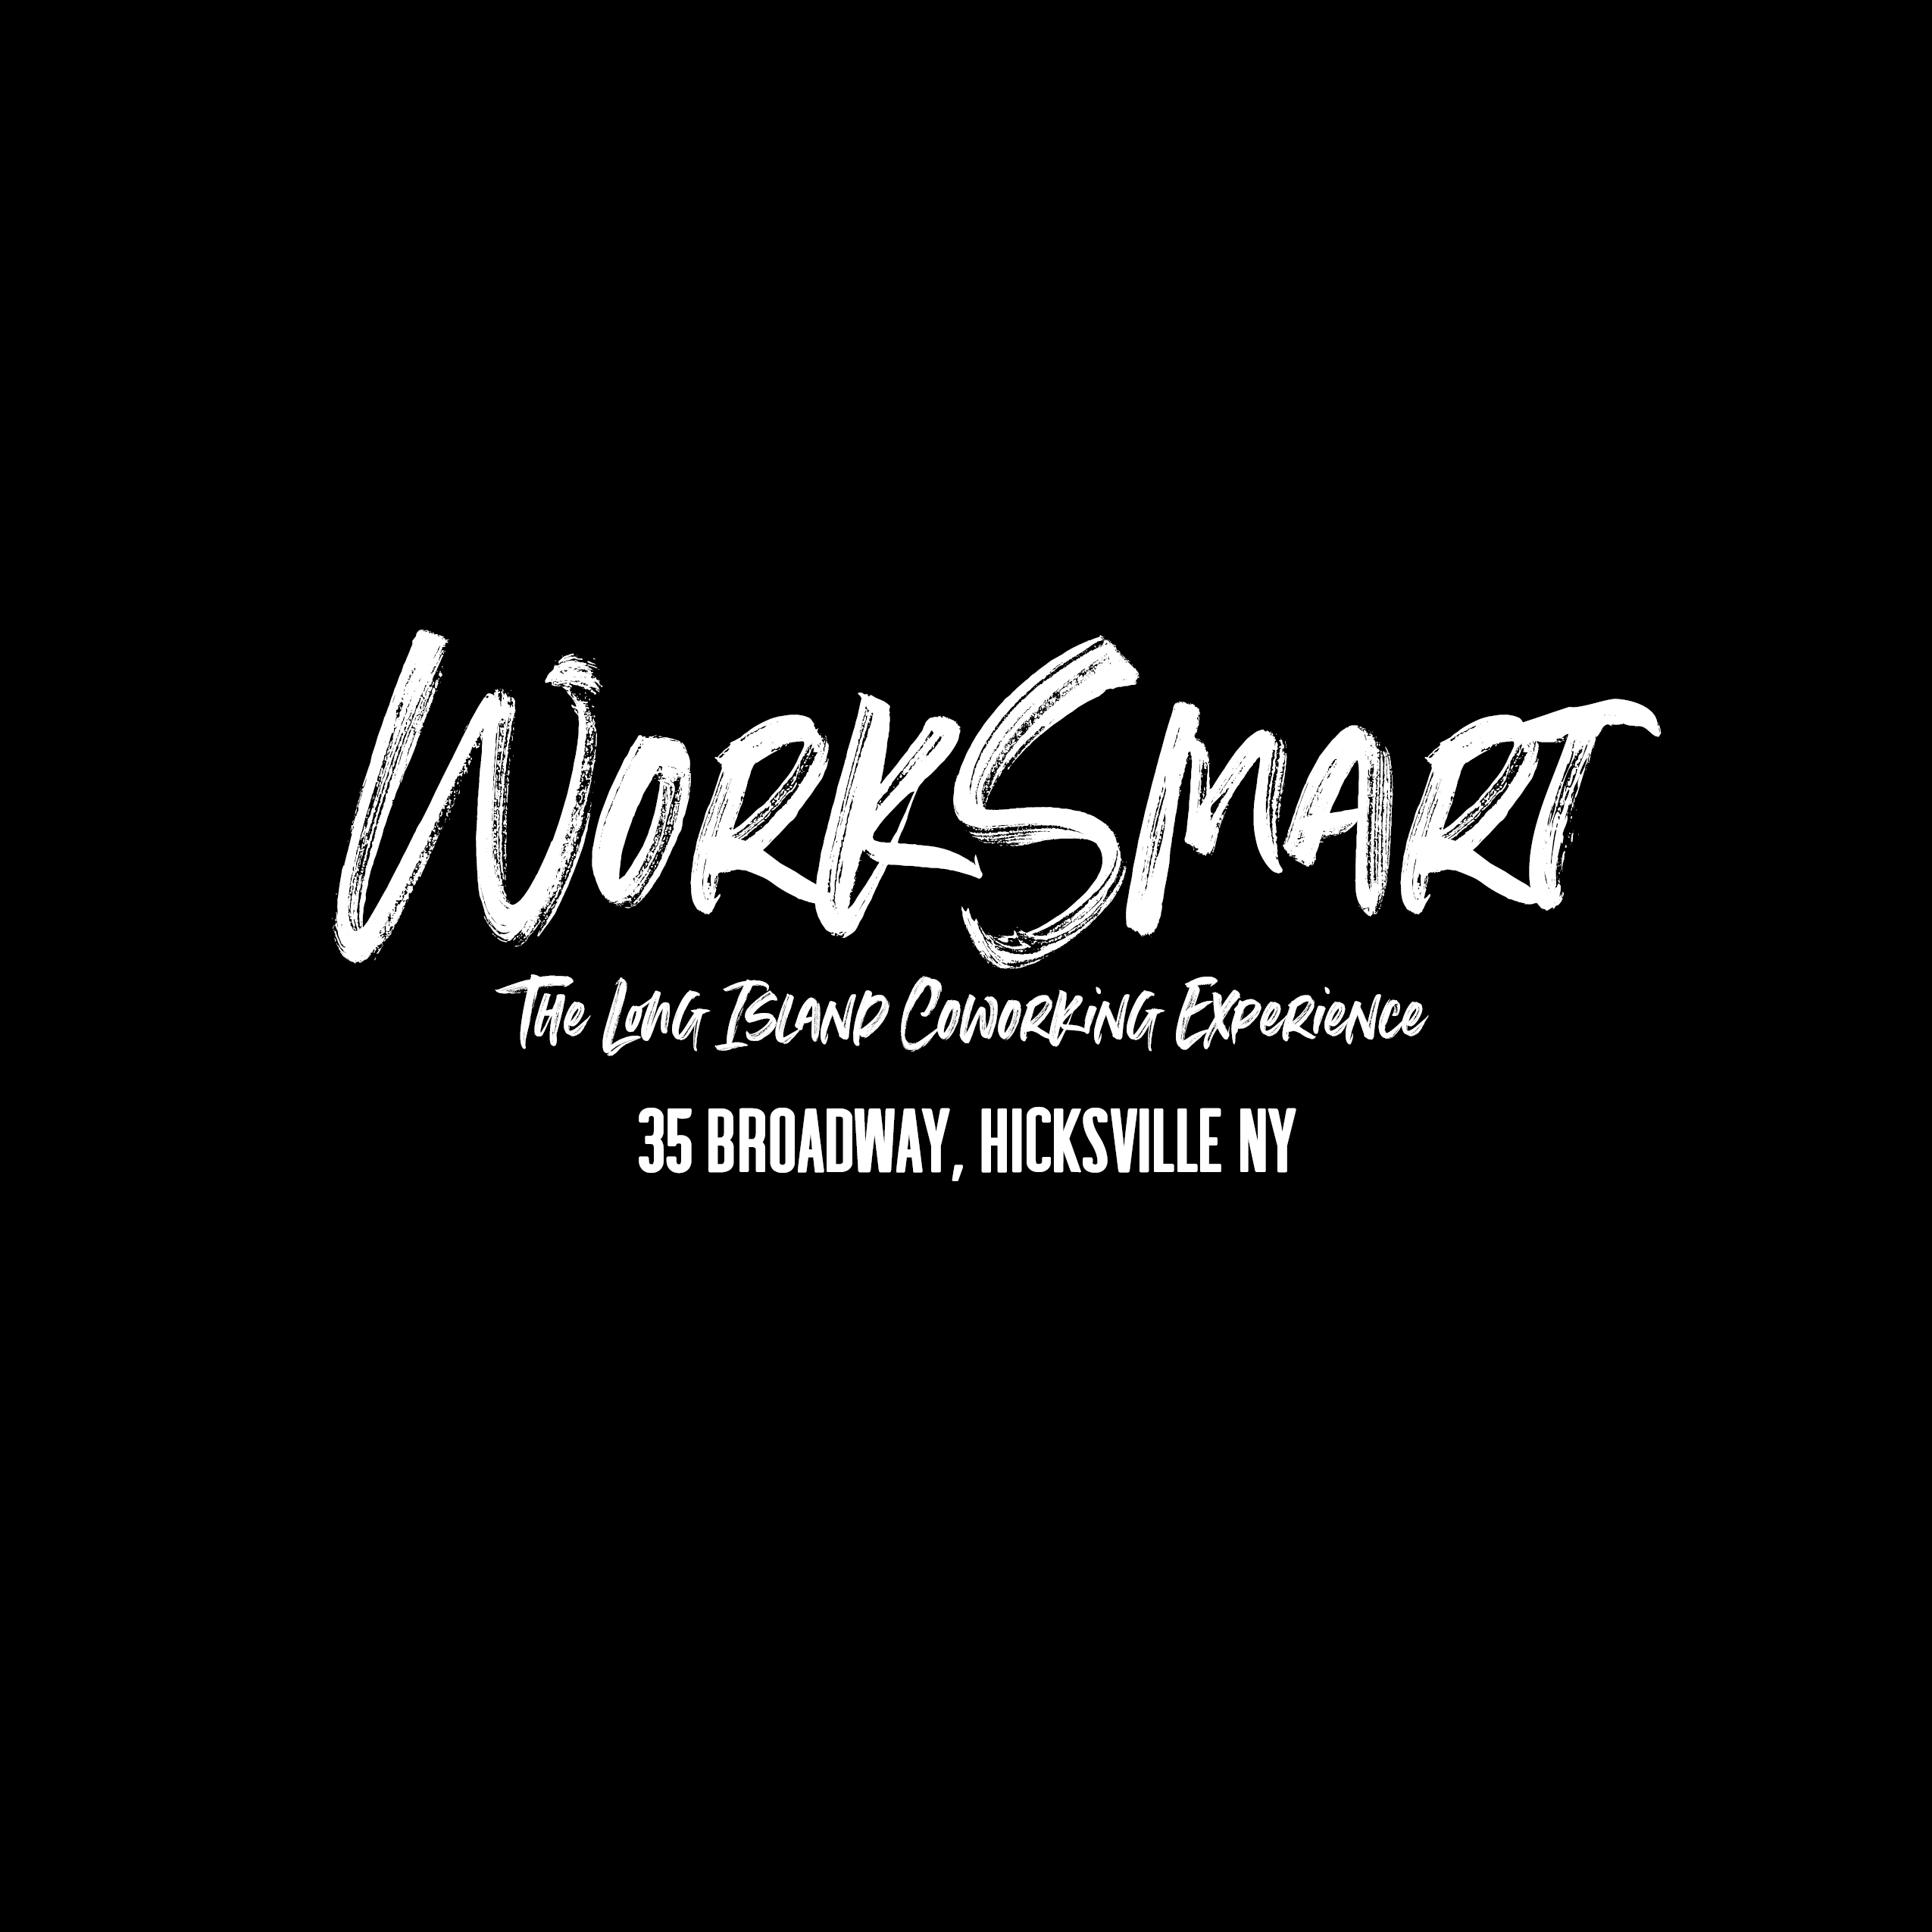 WorkSmart Coworking - The Long Island Coworking Experience